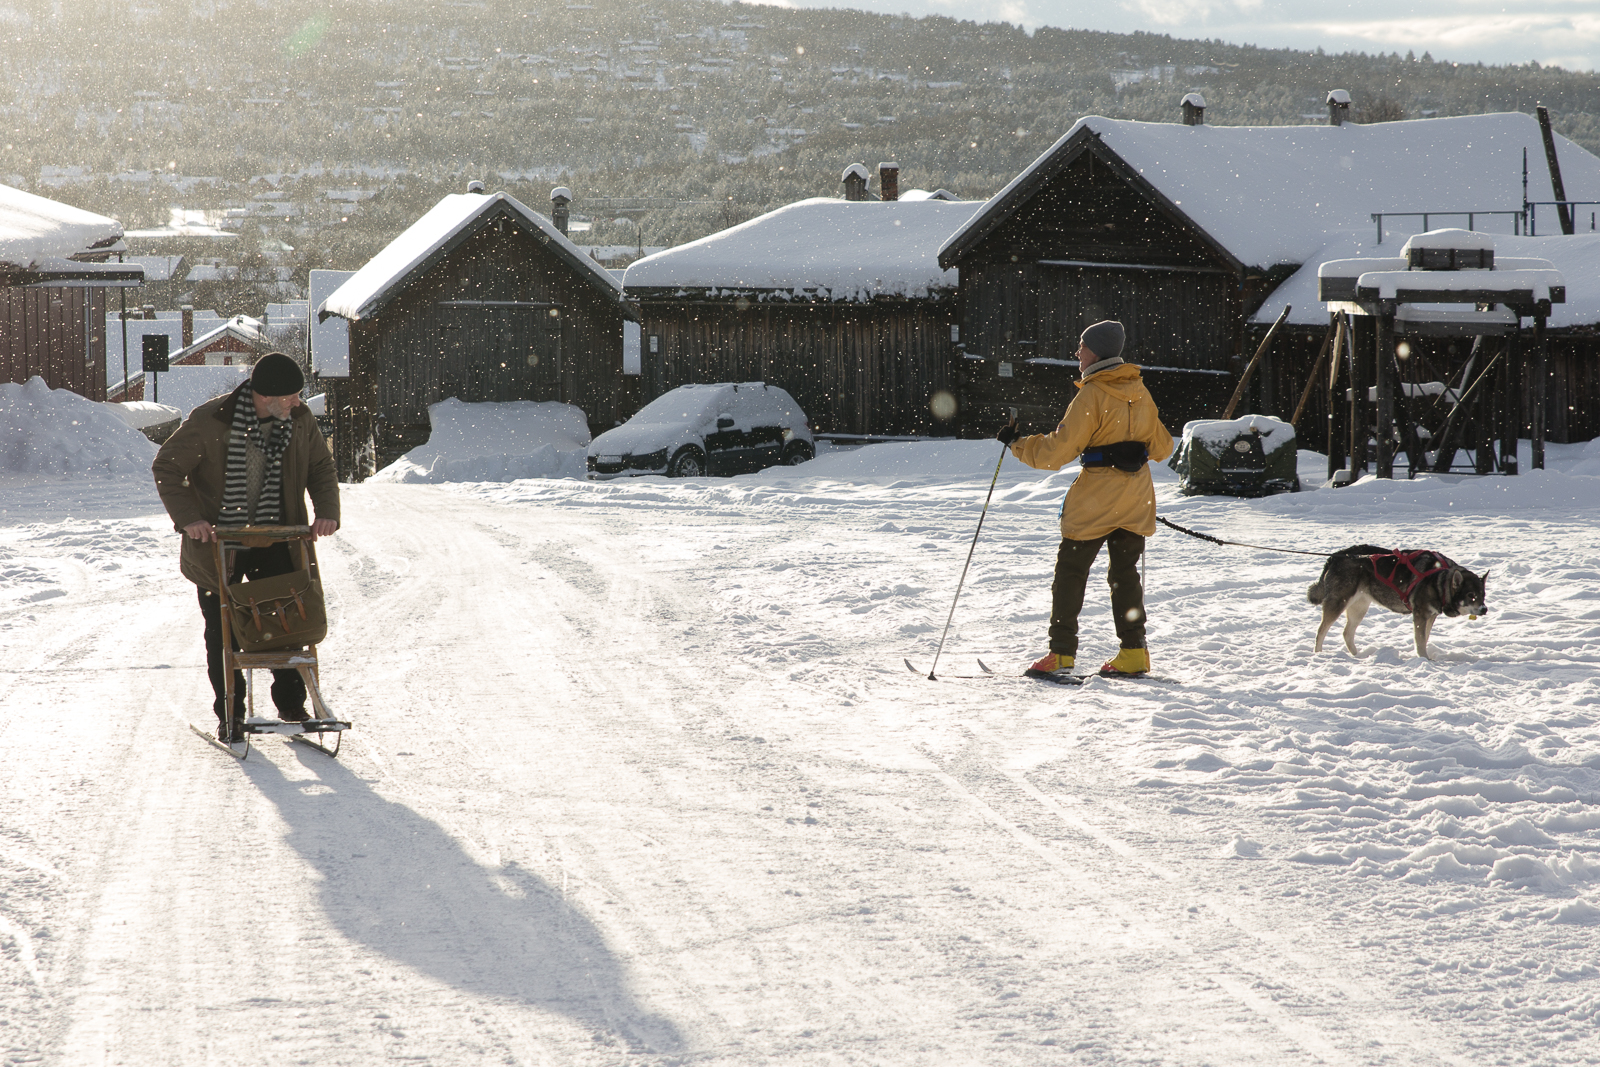 Just another winter day in Røros